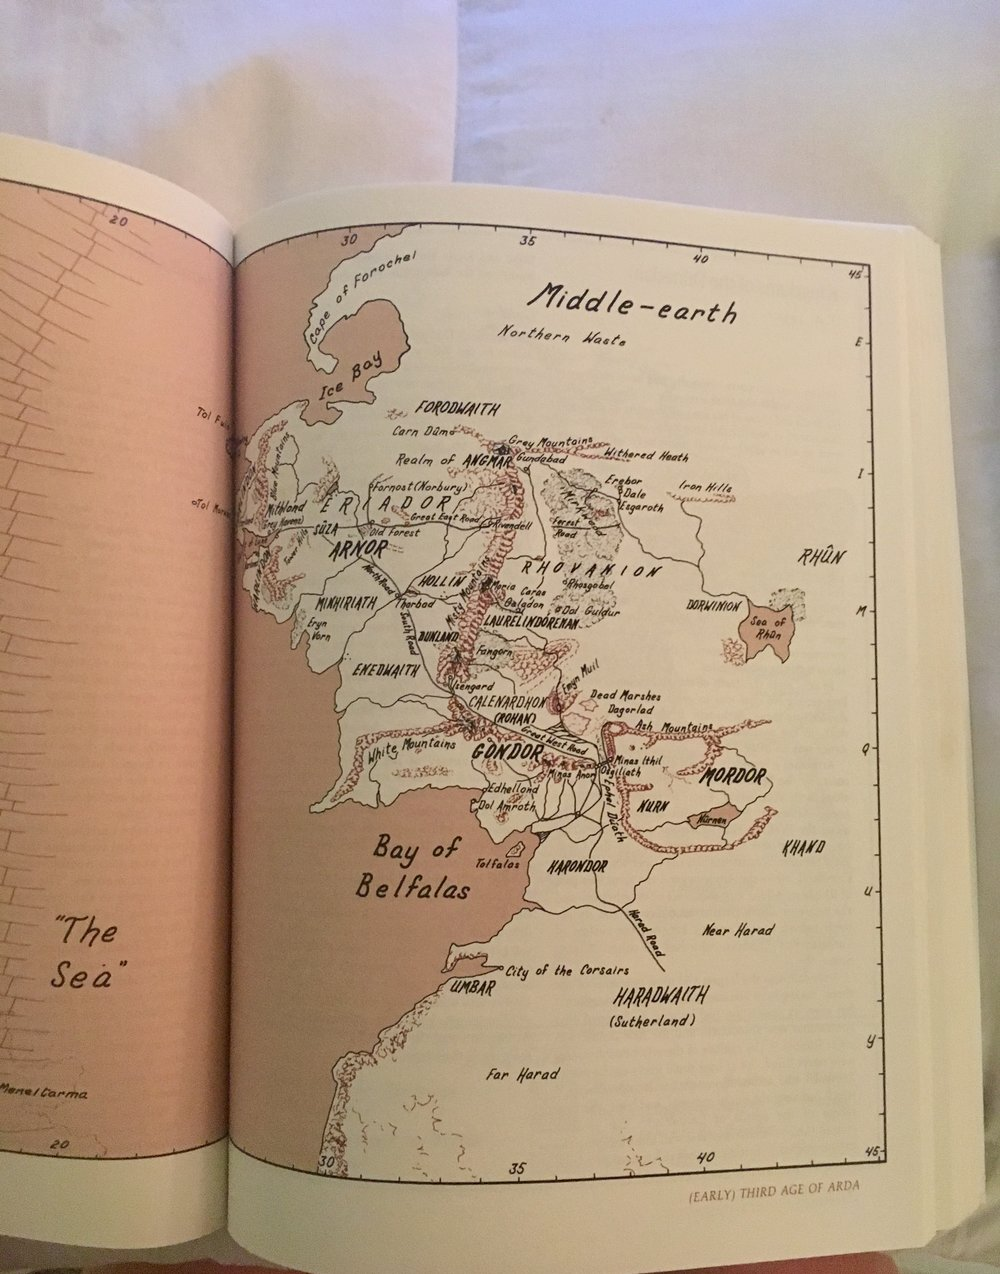 For one recent birthday, my friend George gave me an atlas of Middle-earth. He gets me.